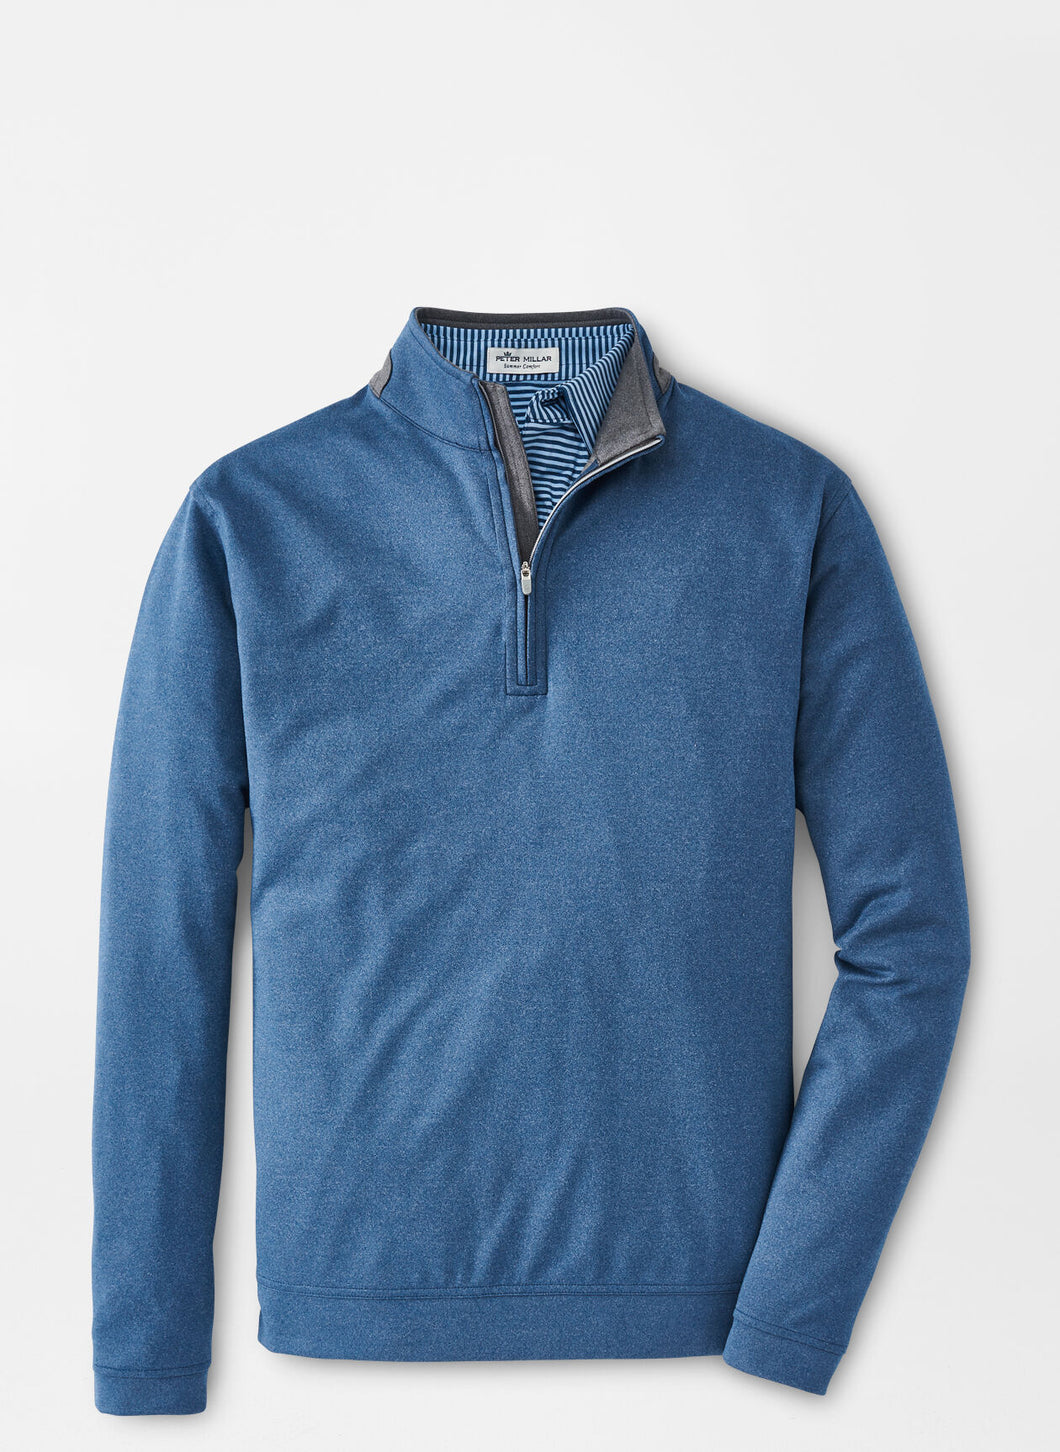 Peter Millar Mackay Performance Quarter-Zip in City Blue